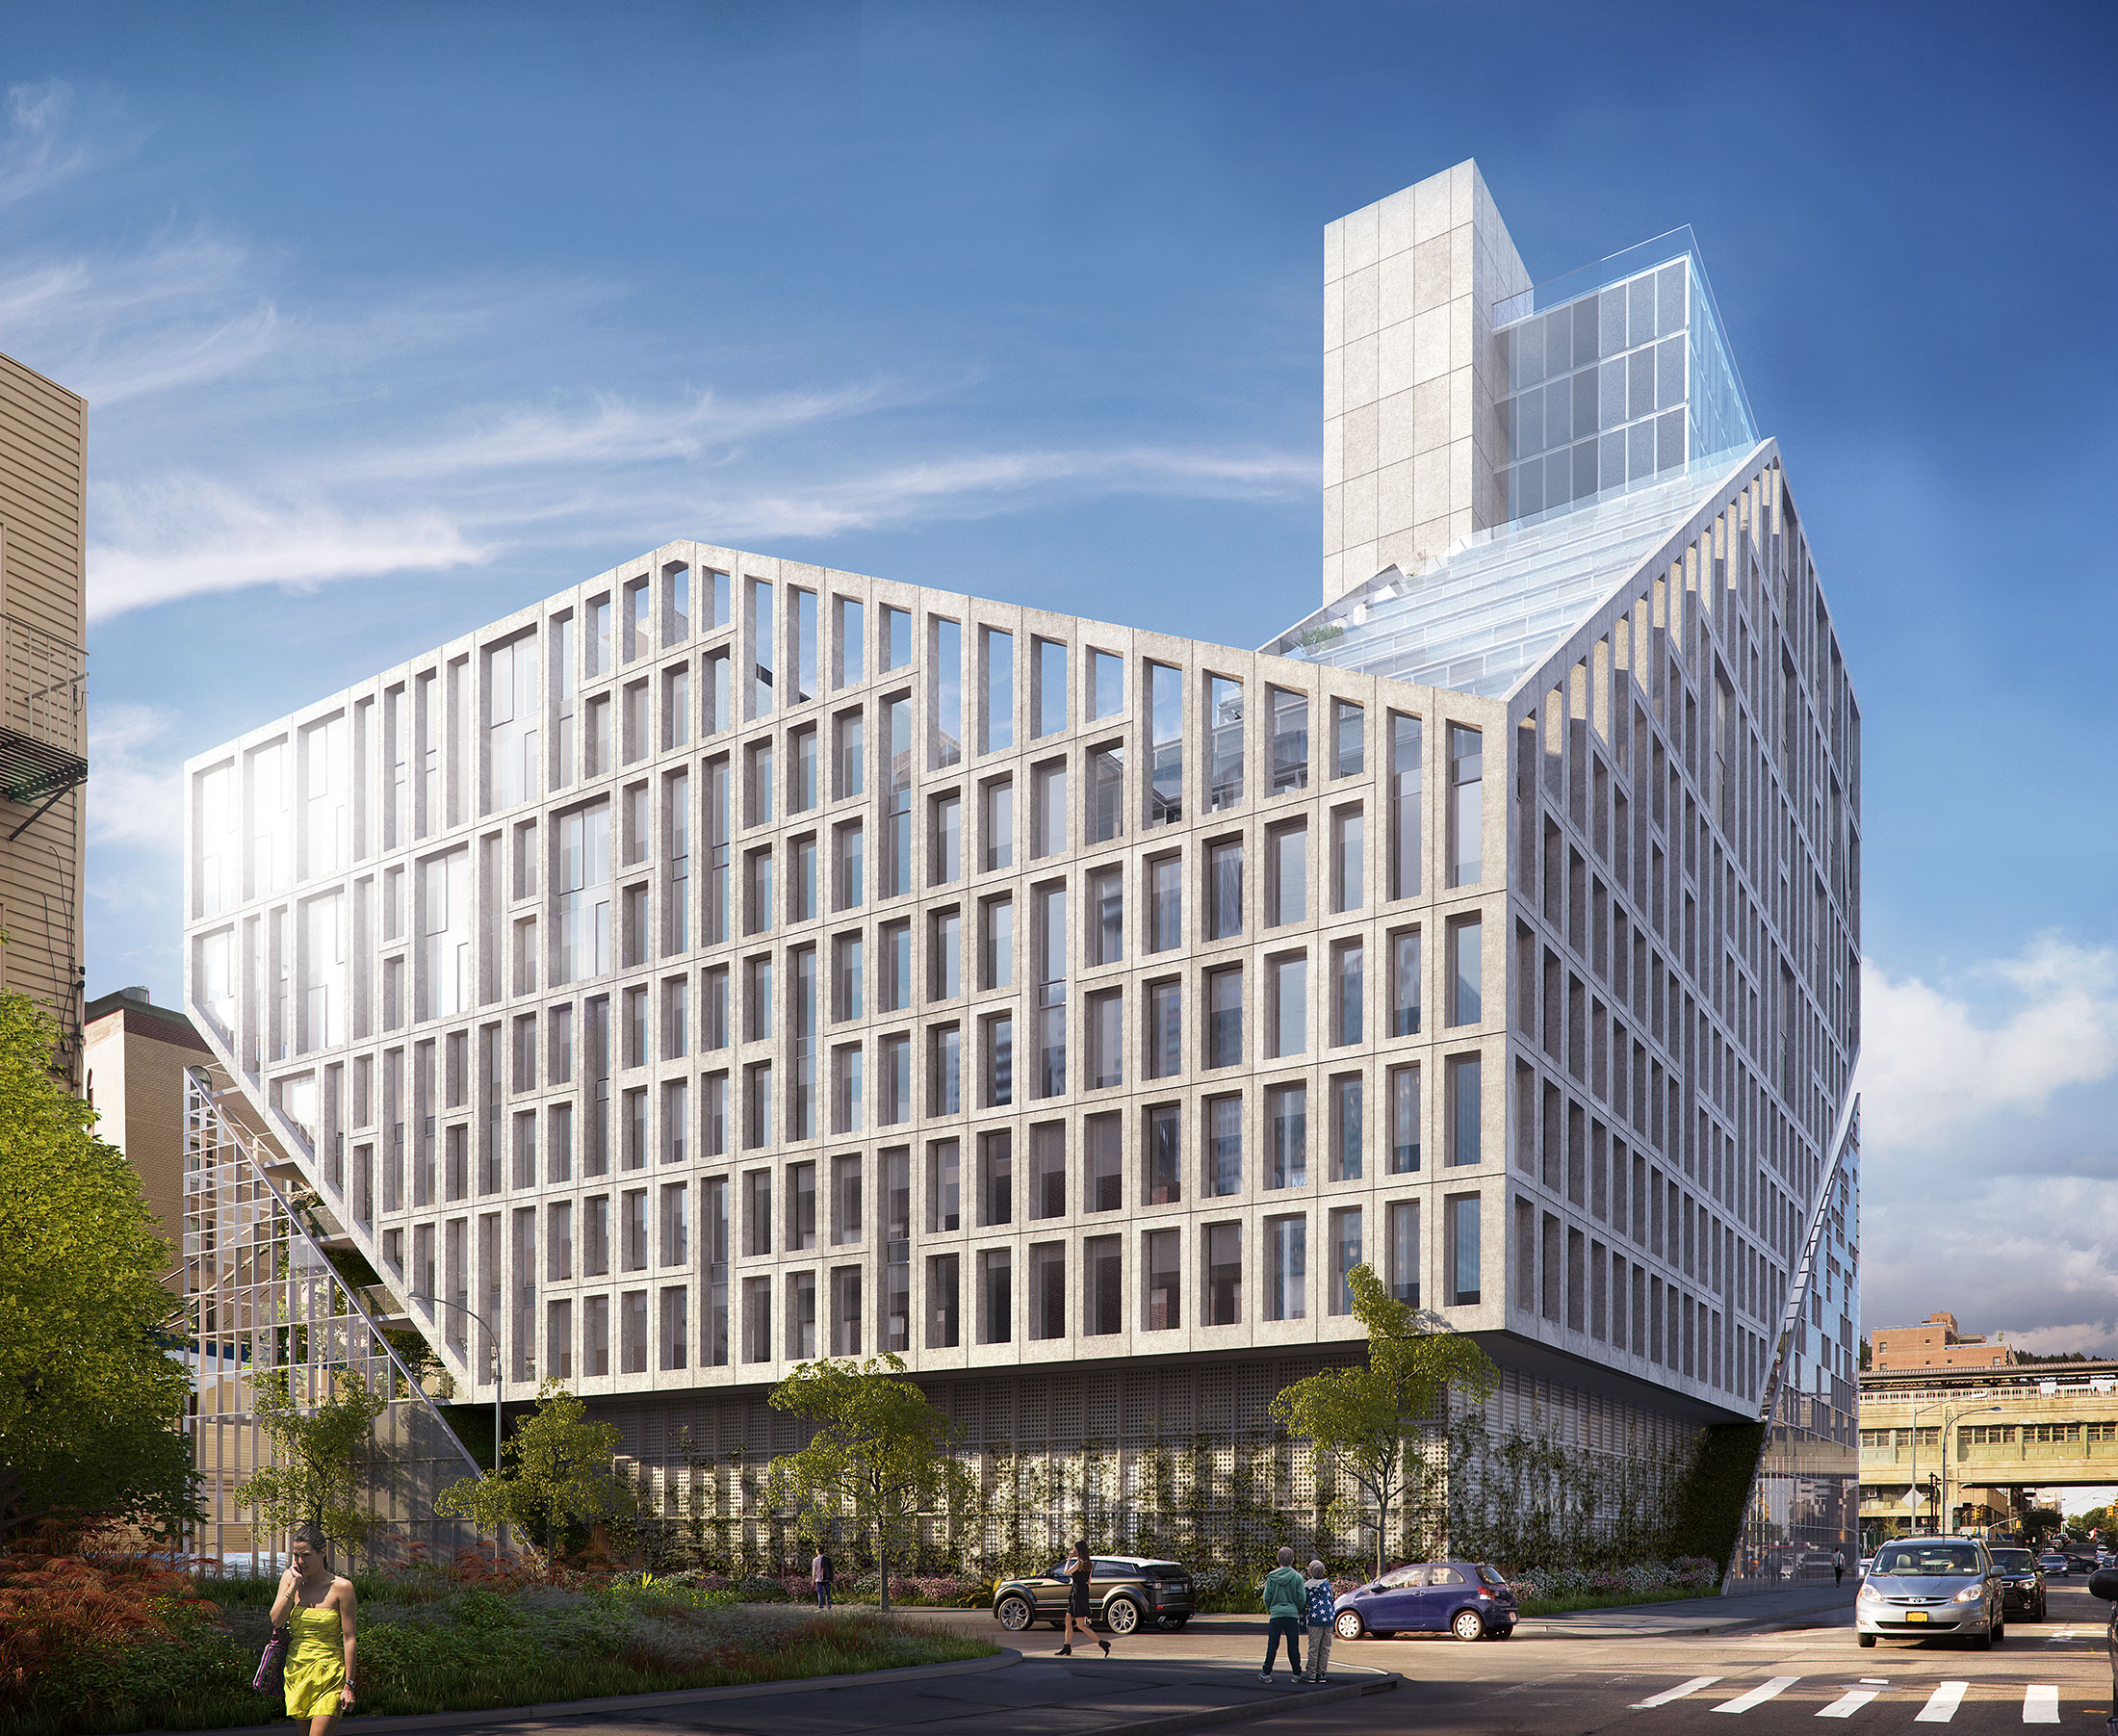 Architectural Rendering of the exterior of the Bevel Long Island City project located in Queens, New York